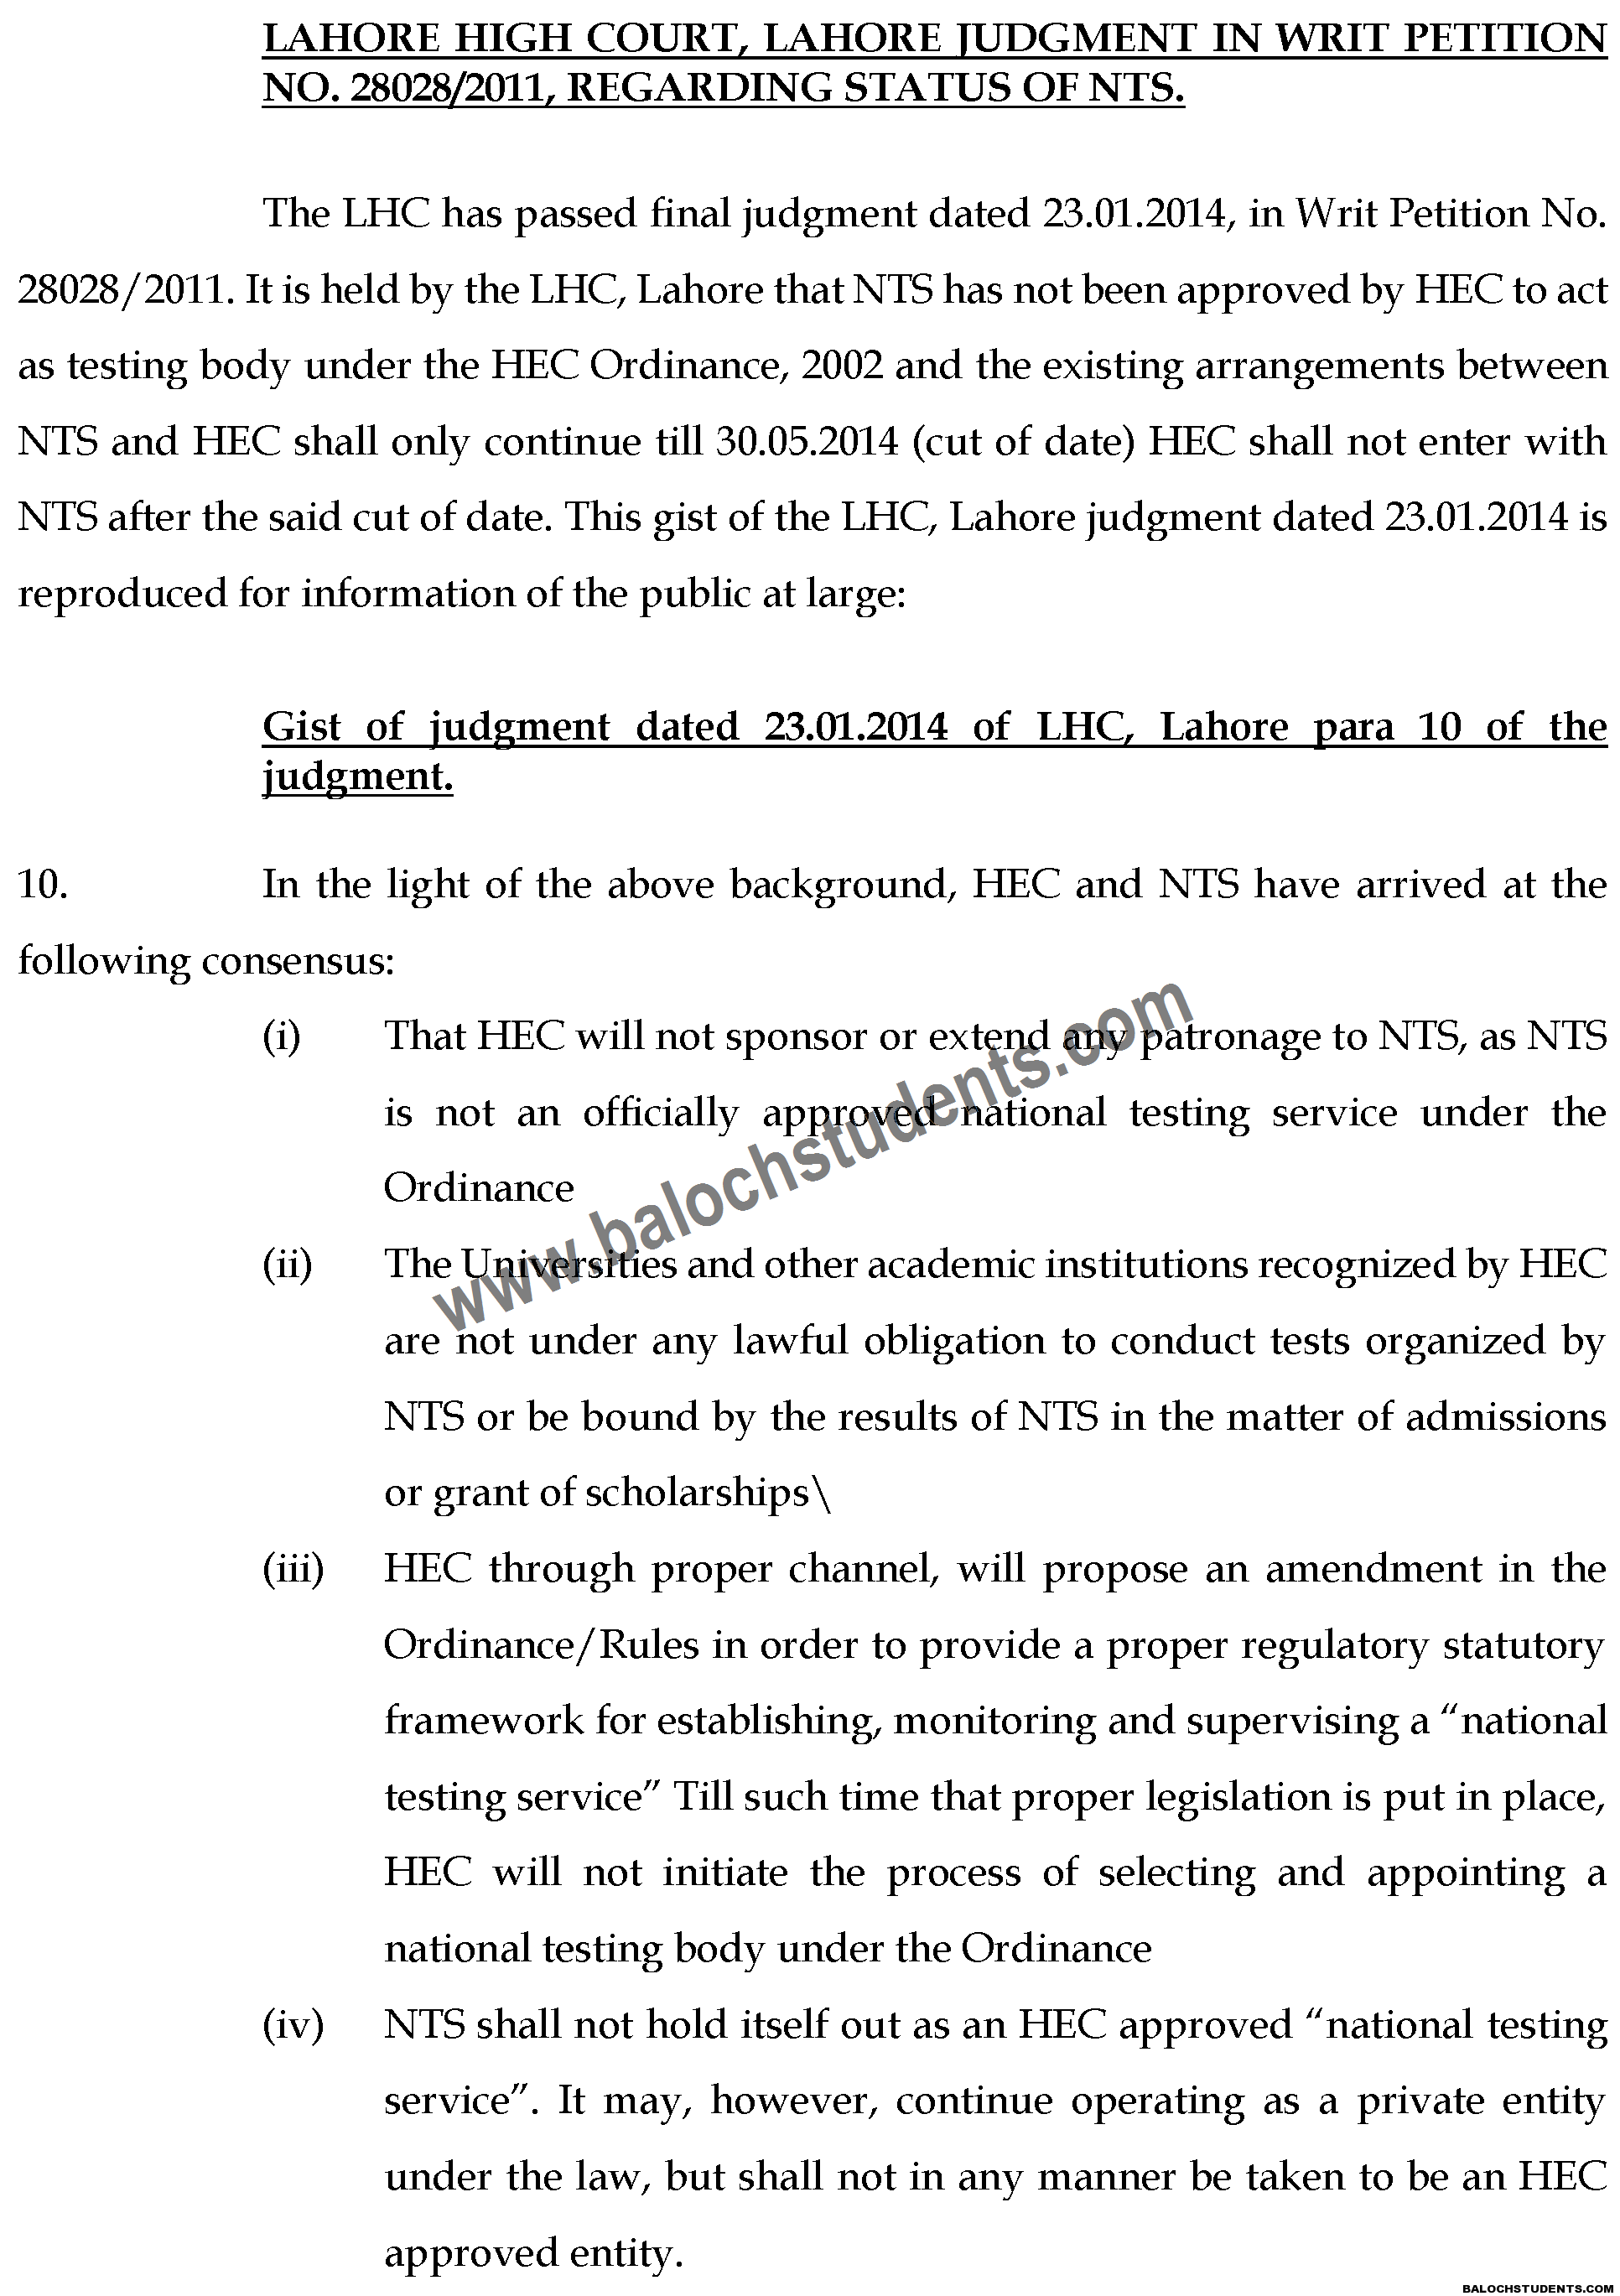 Gist of LHC Judgement in WP 28028 of 2011